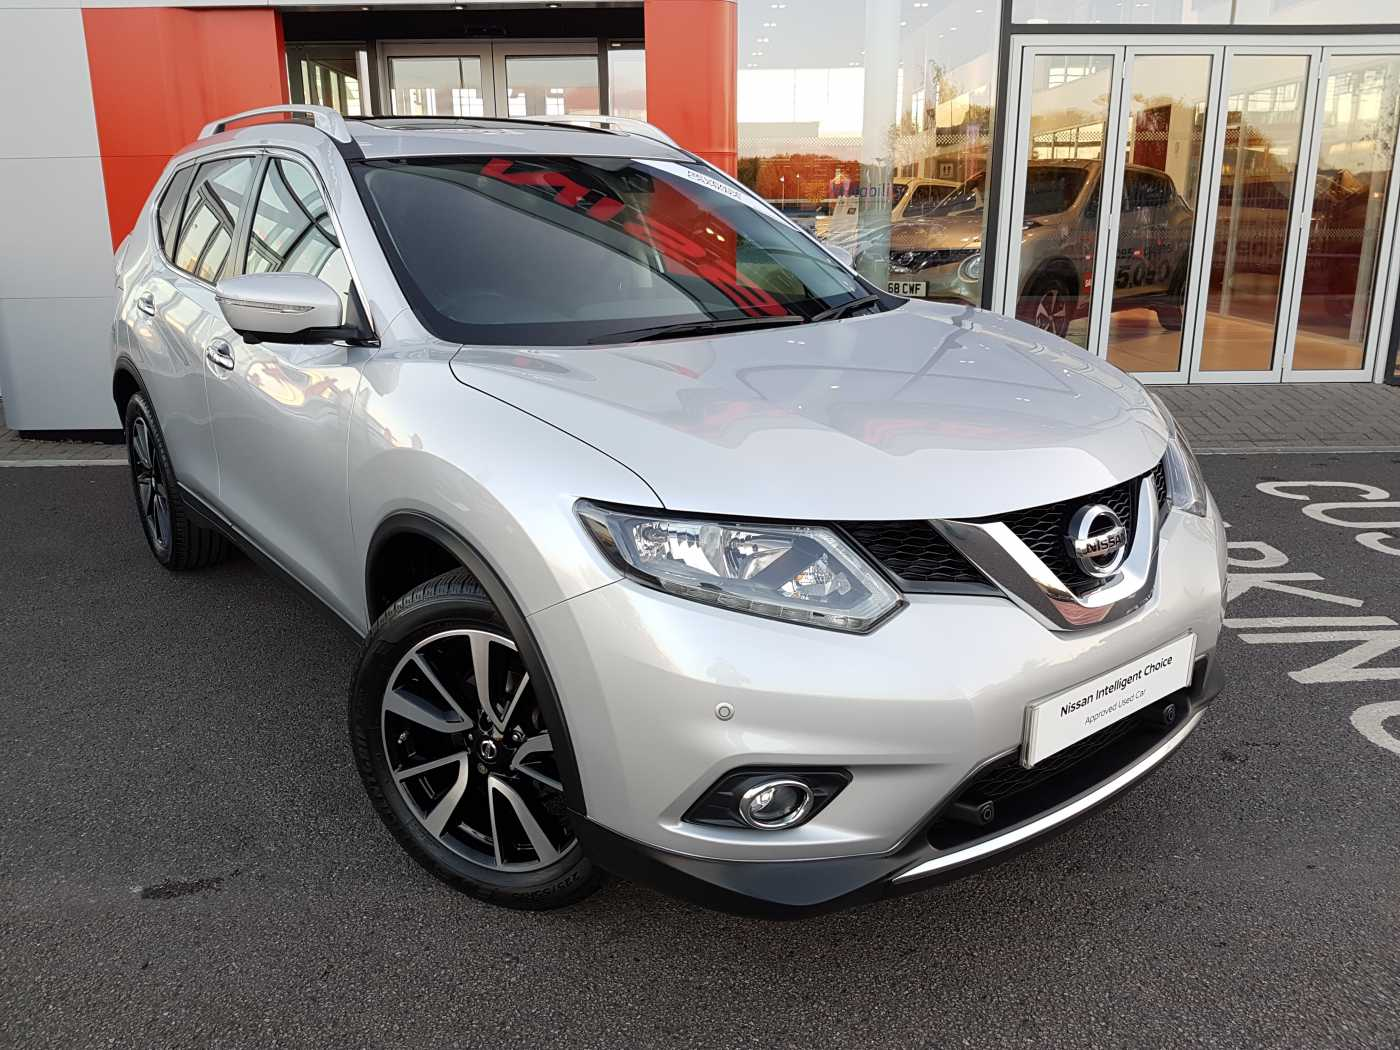 Nissan Rogue Service Manual: EPS warning lamp does not turn on